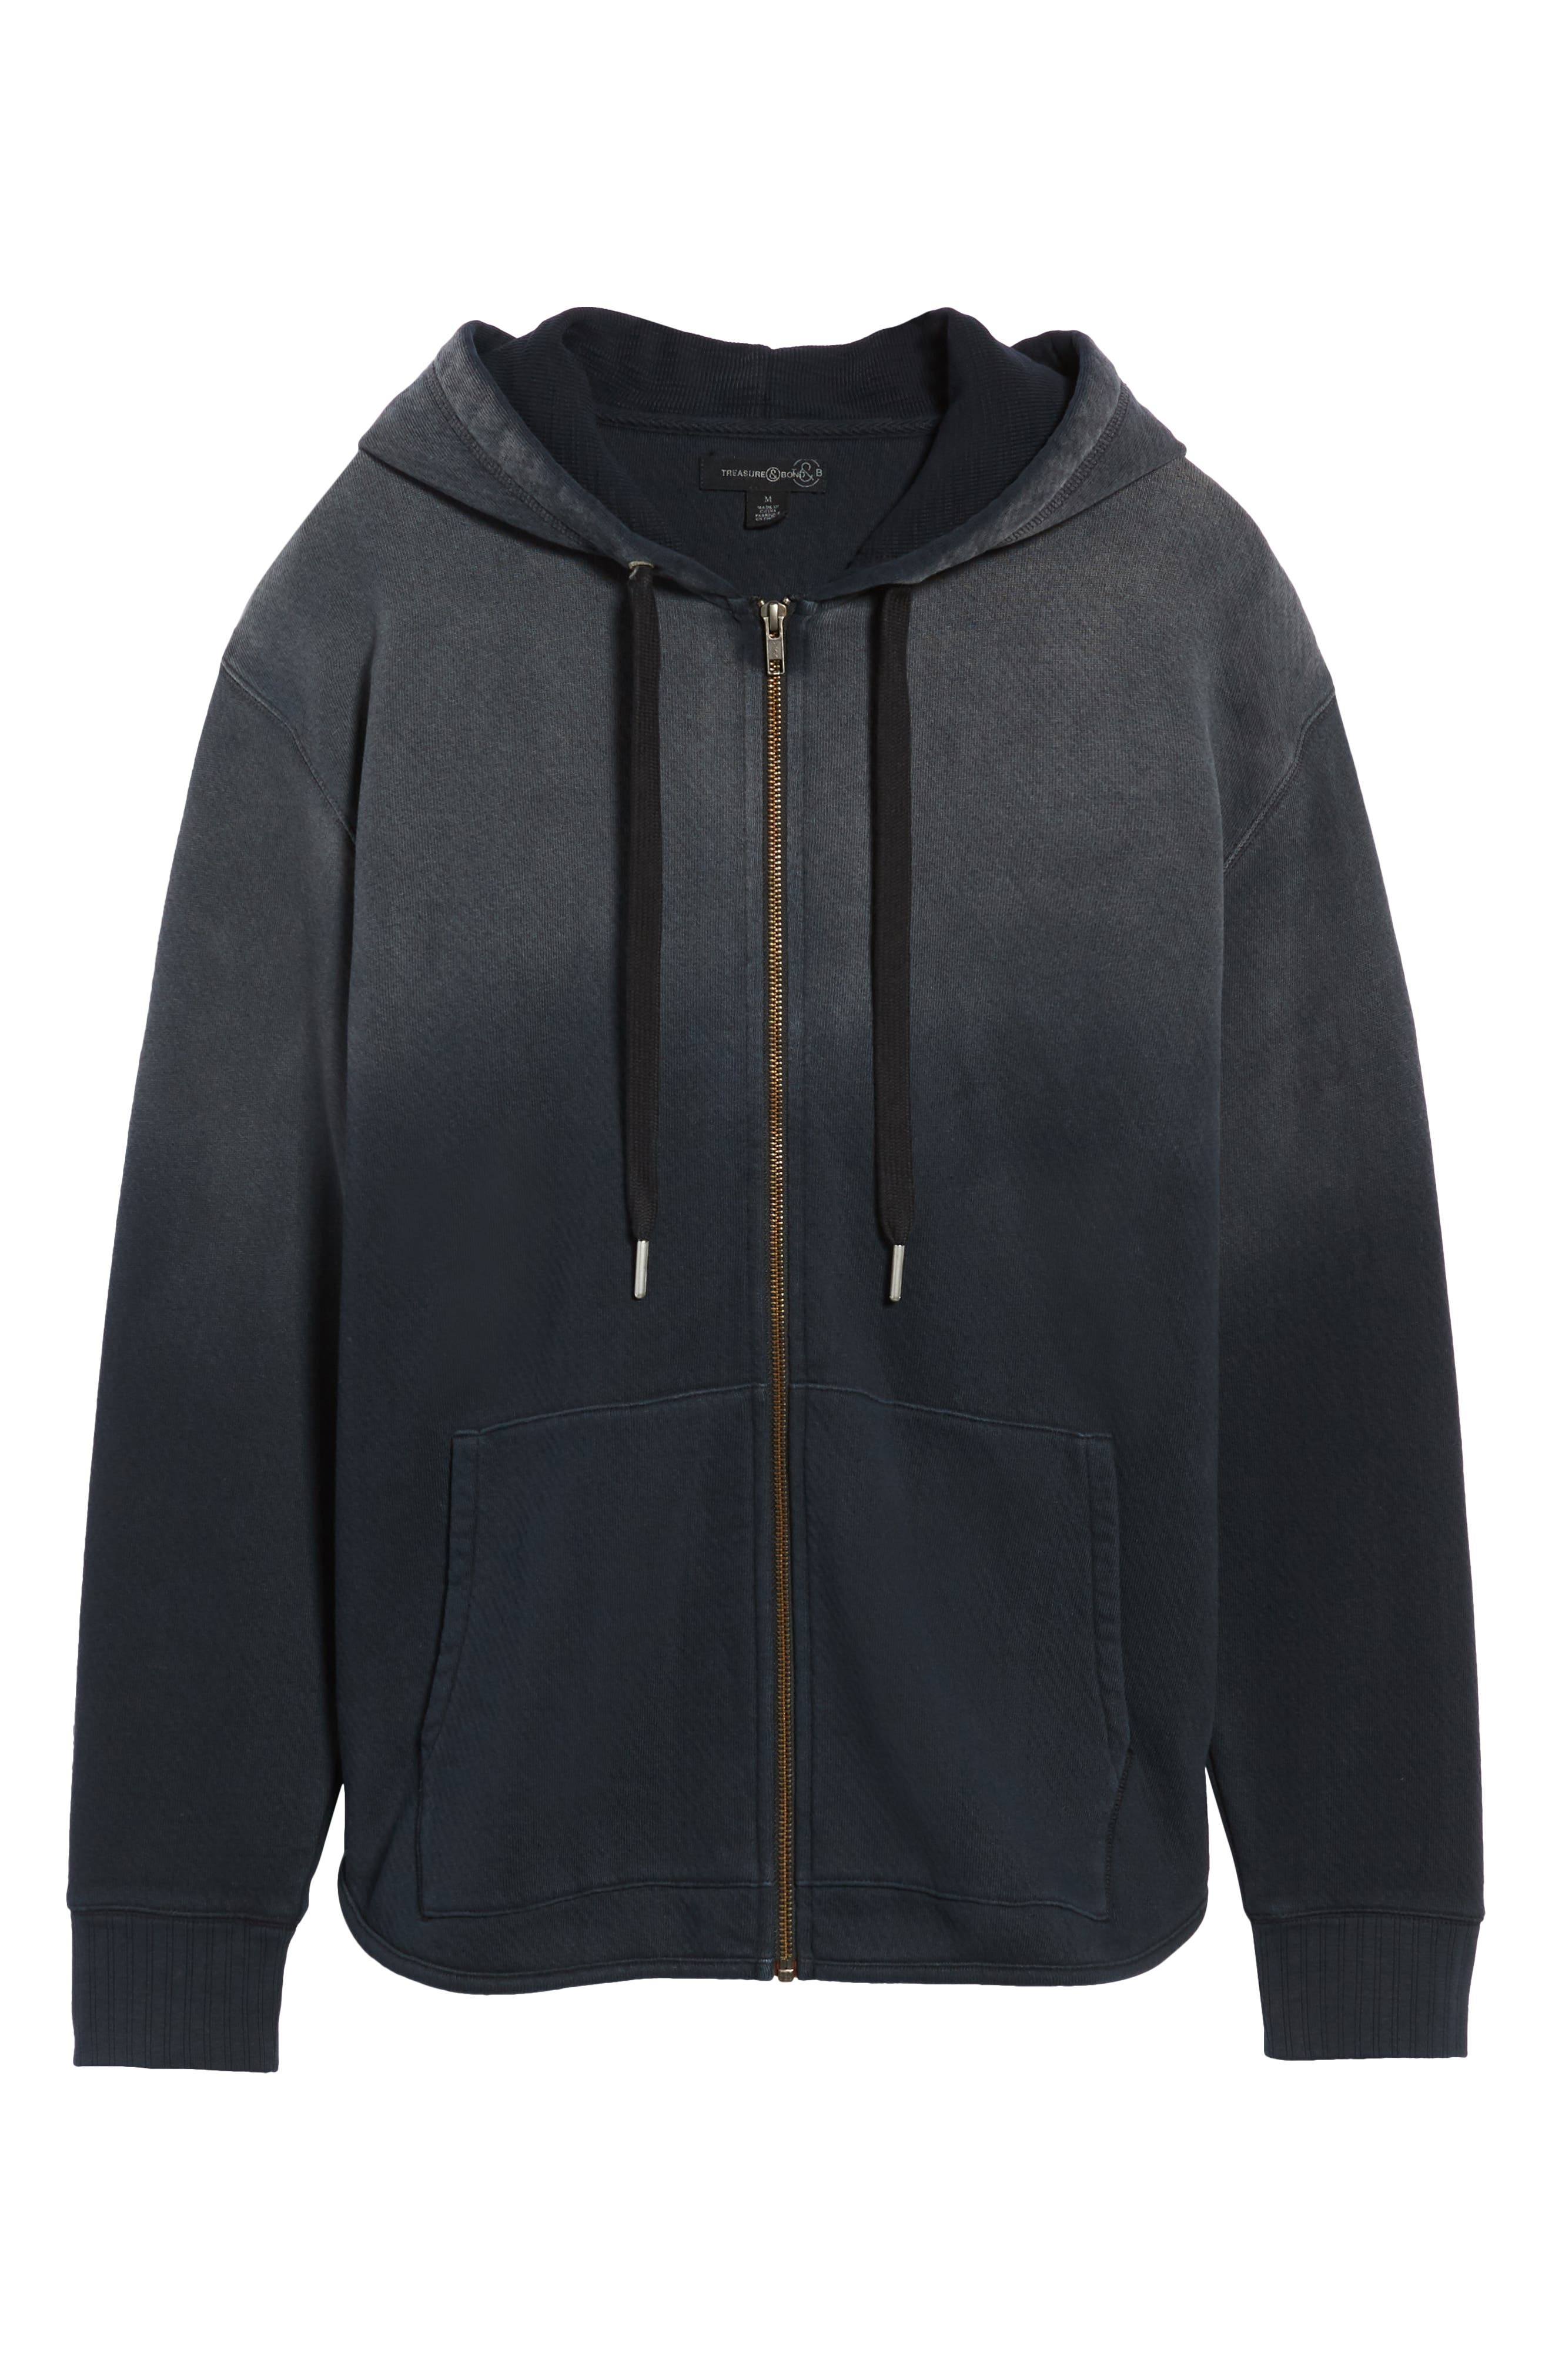 Ombré French Terry Zip Hoodie,                             Alternate thumbnail 6, color,                             BLACK ROCK